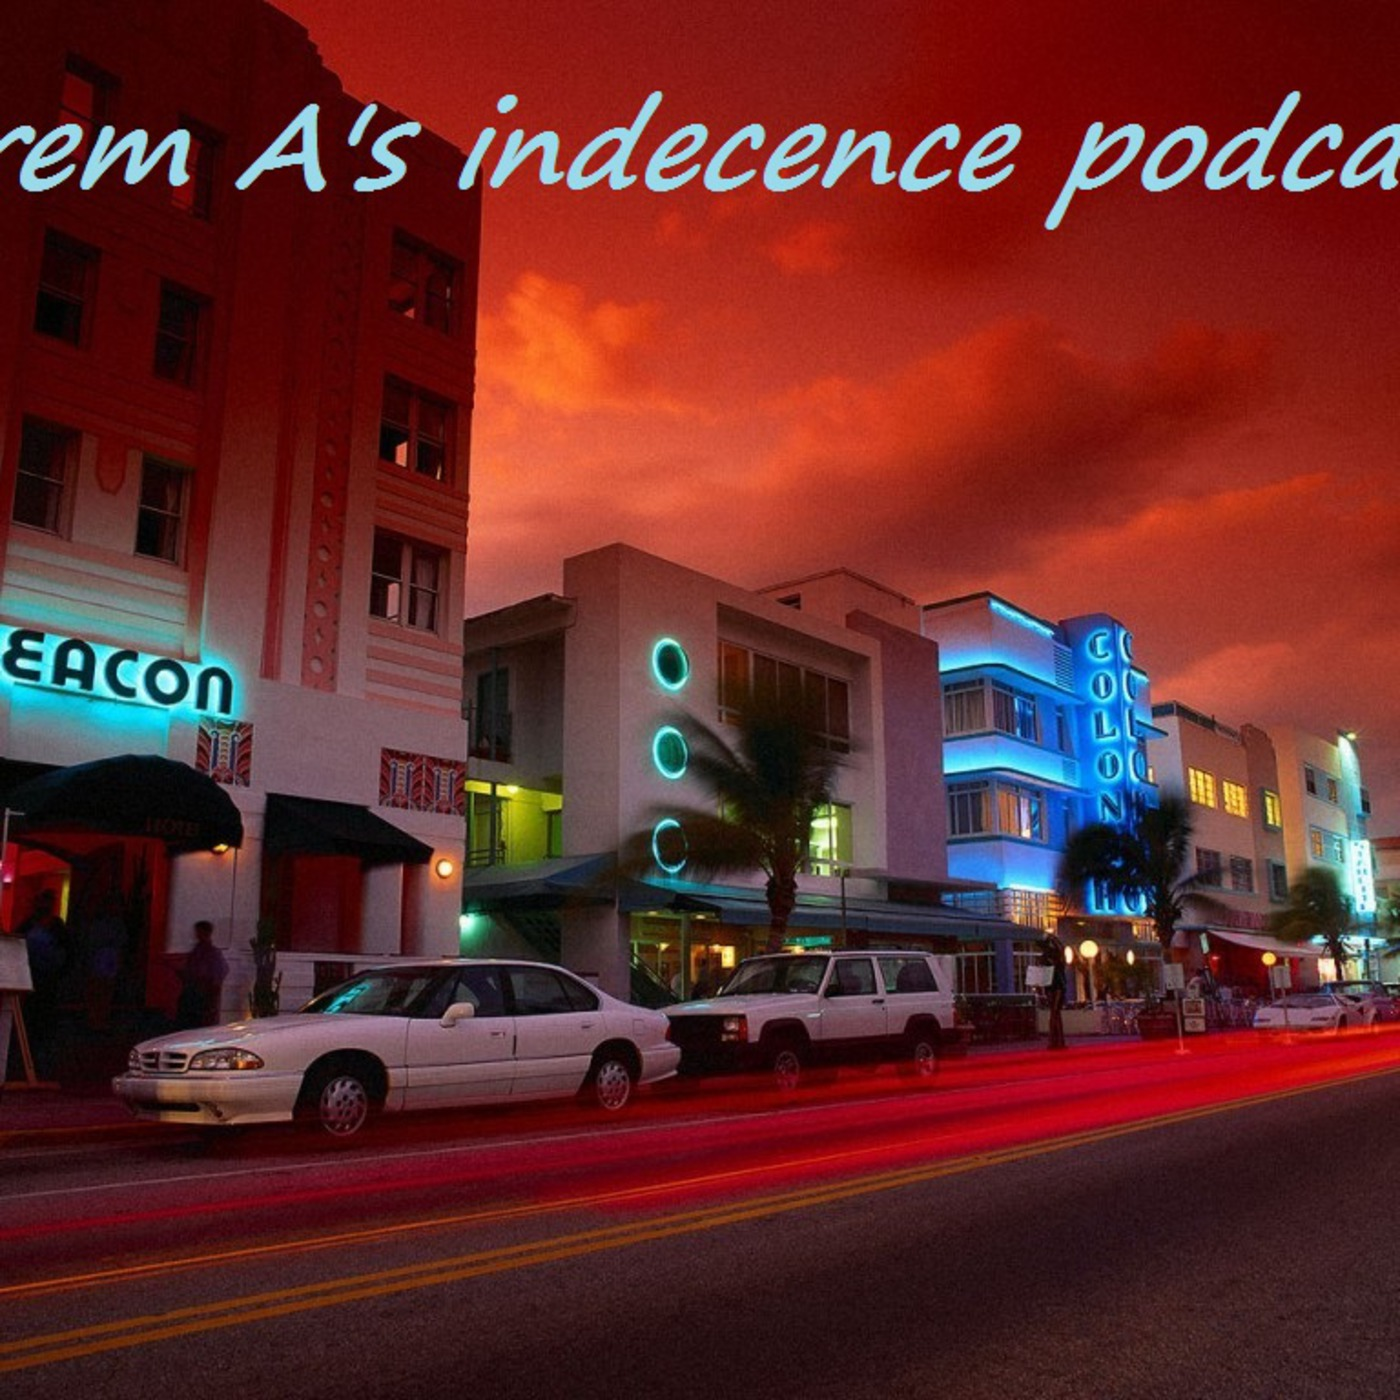 jerem A's indecence Podcast